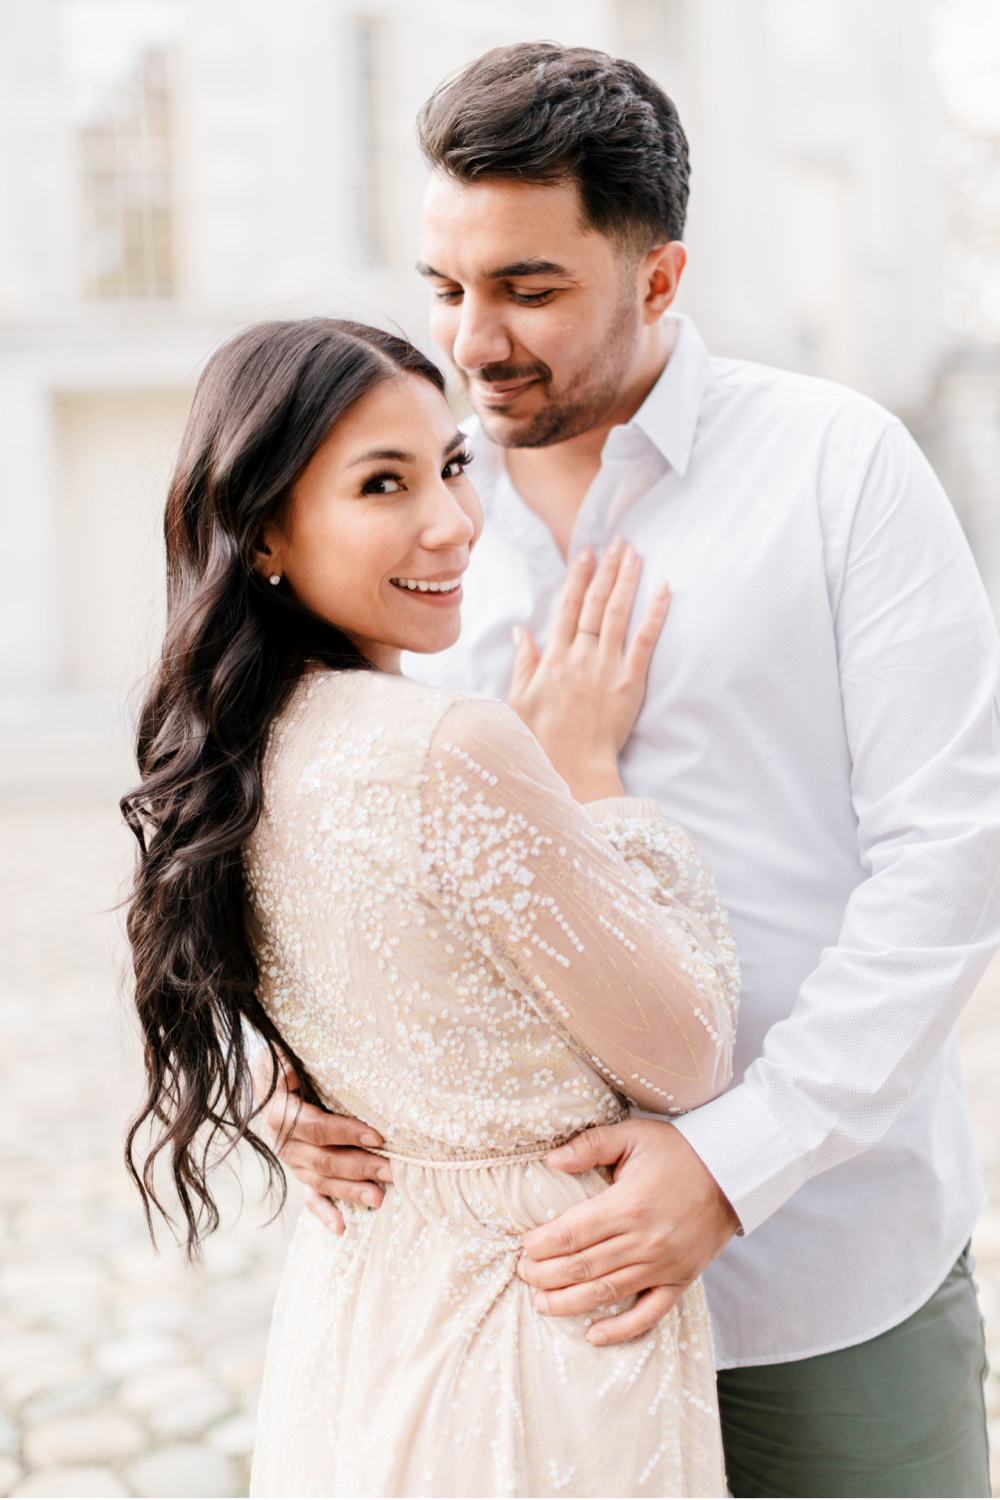 30 Milanee&Amine 121 1 Philadelphia Engagement Philadelphia Wedding Photographer Fine Art Wedding Photographer Light And Airy